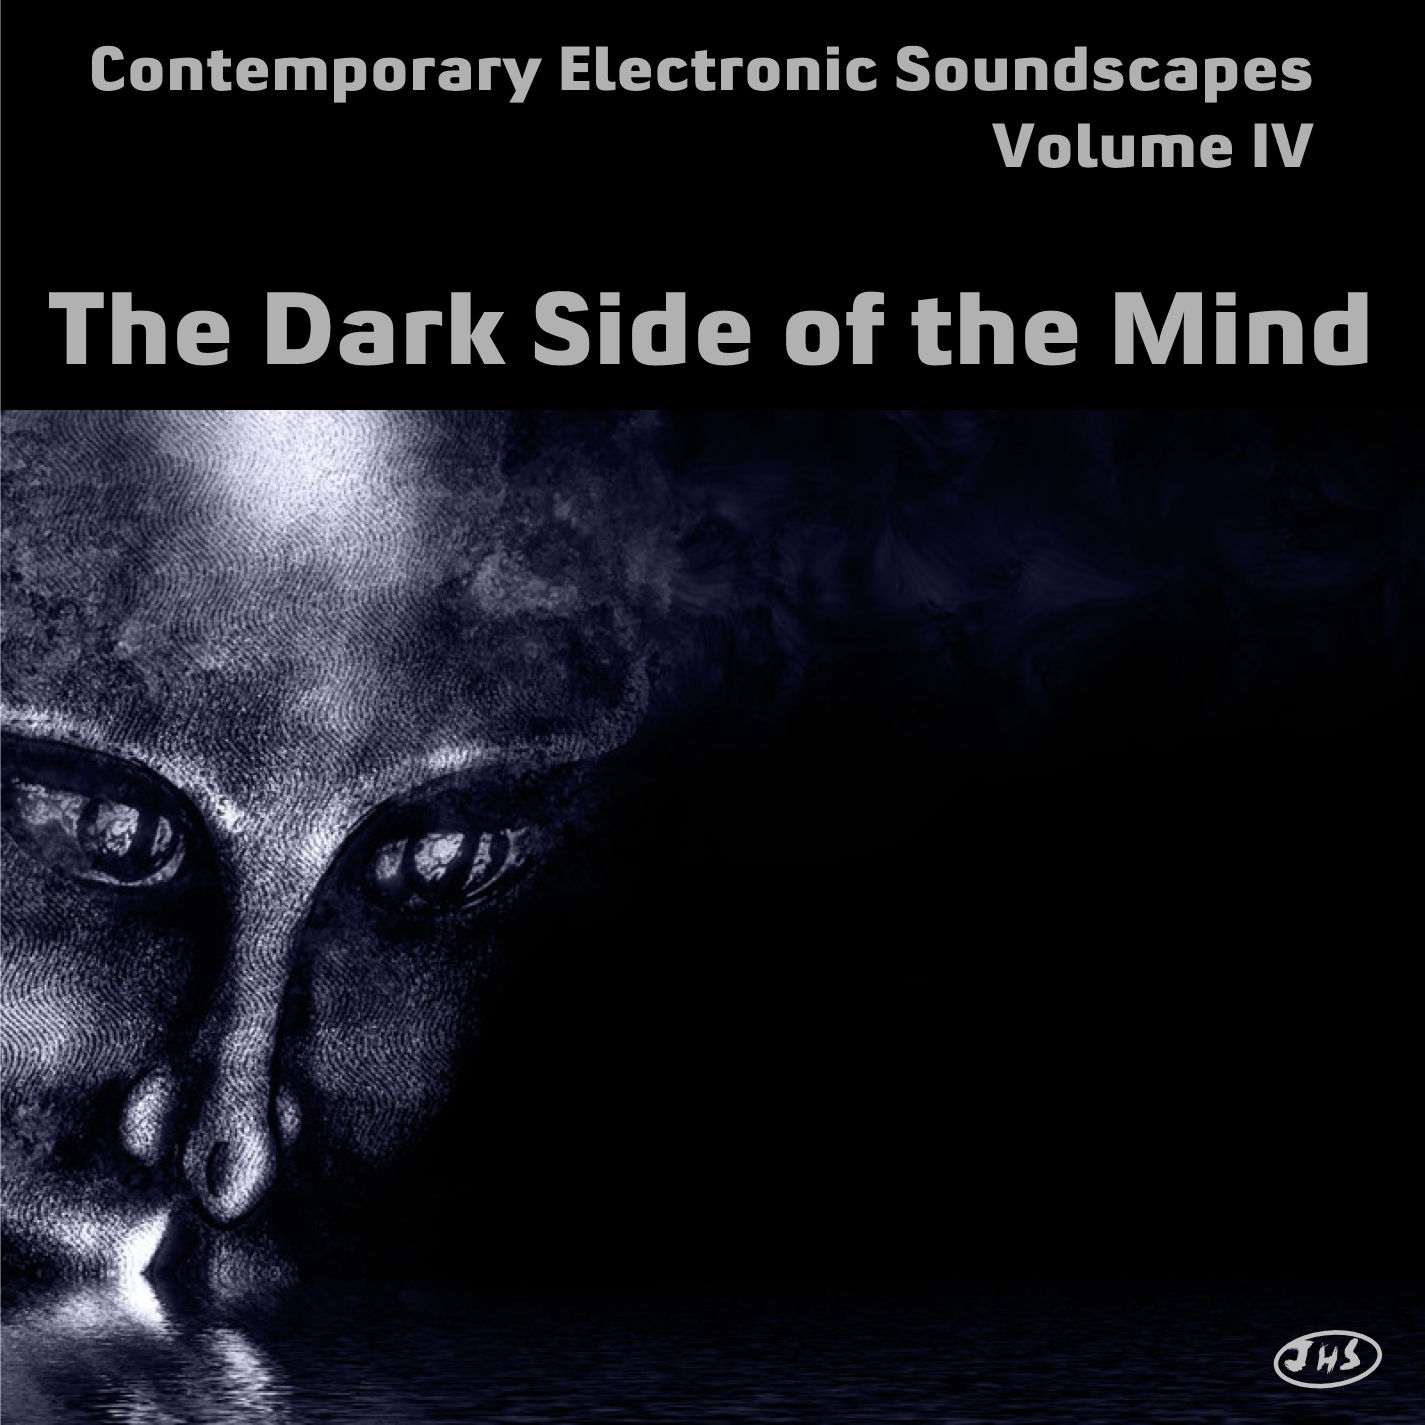 CES Volume IV The Dark Side of the Mind okładka przód 1425x1425